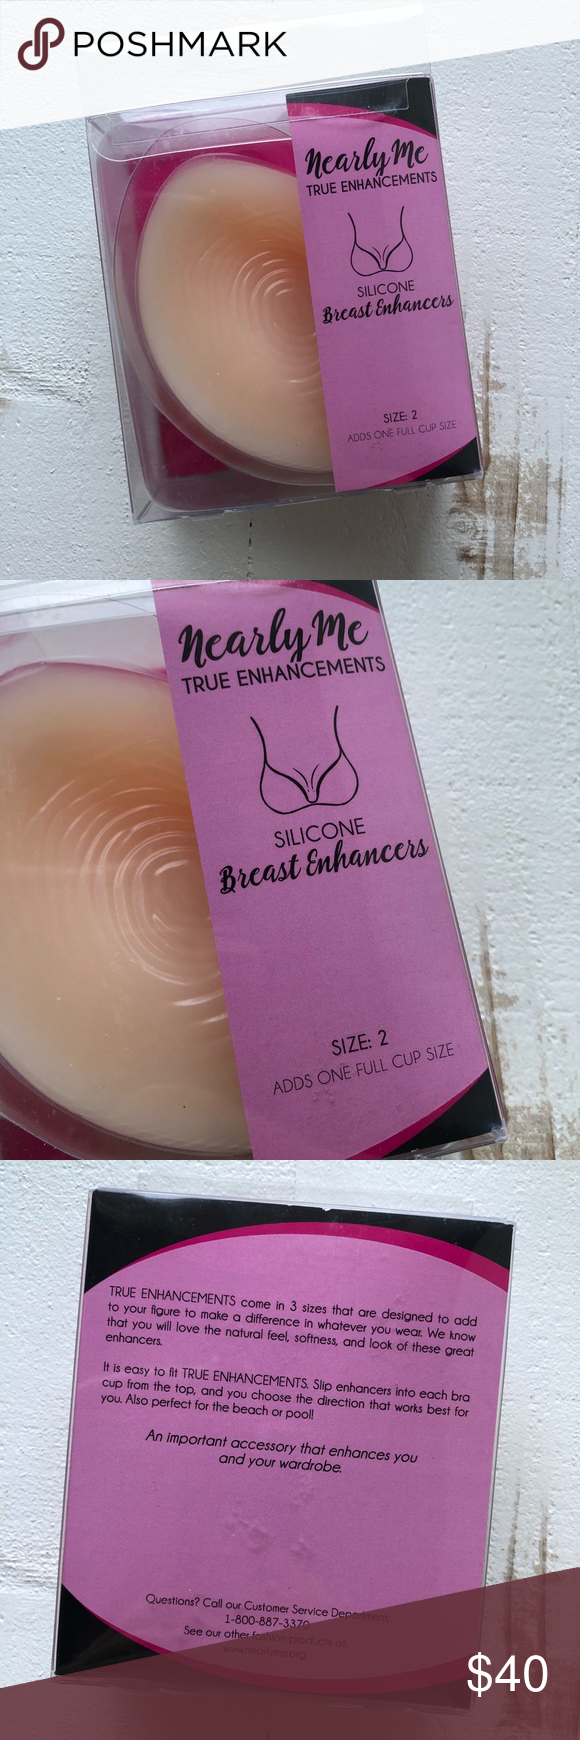 a8b04968879 NEW Nearly Me True Enhancements (in box!!) Size 2 Silicone Breast Enhancers